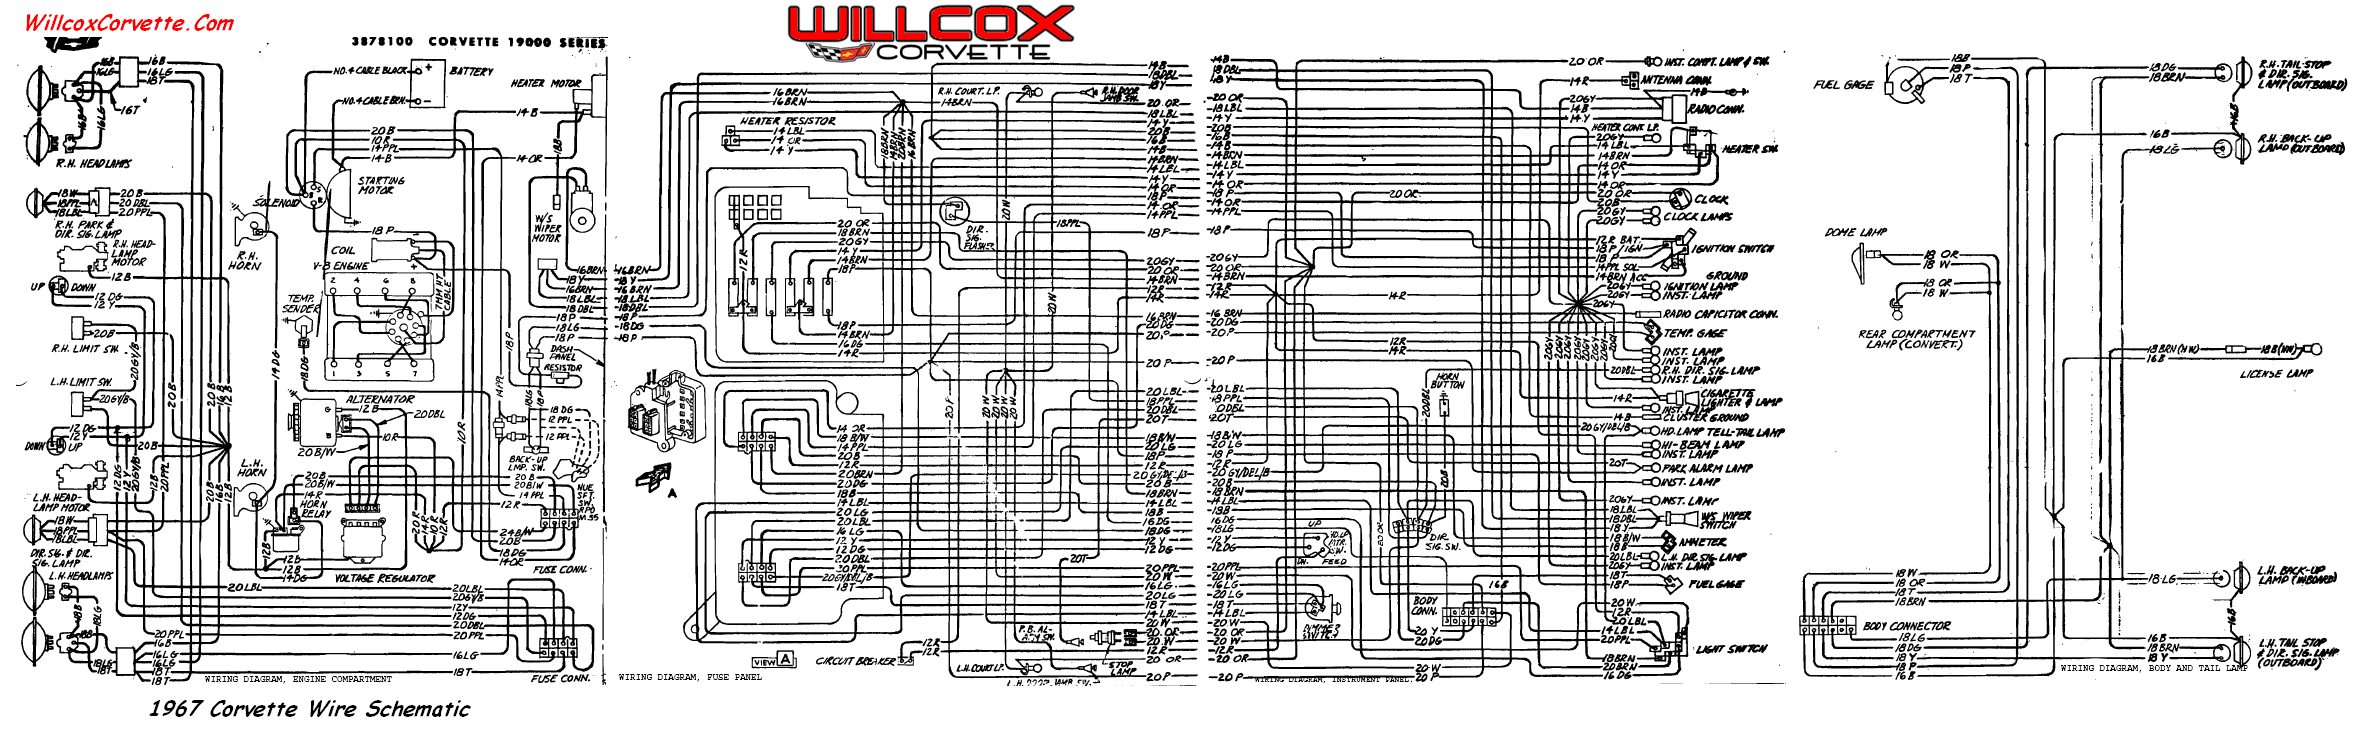 67 wire schematic for tracing wires 1967 corvette wiring diagram (tracer schematic) willcox corvette 1960 corvette wiring diagram at fashall.co